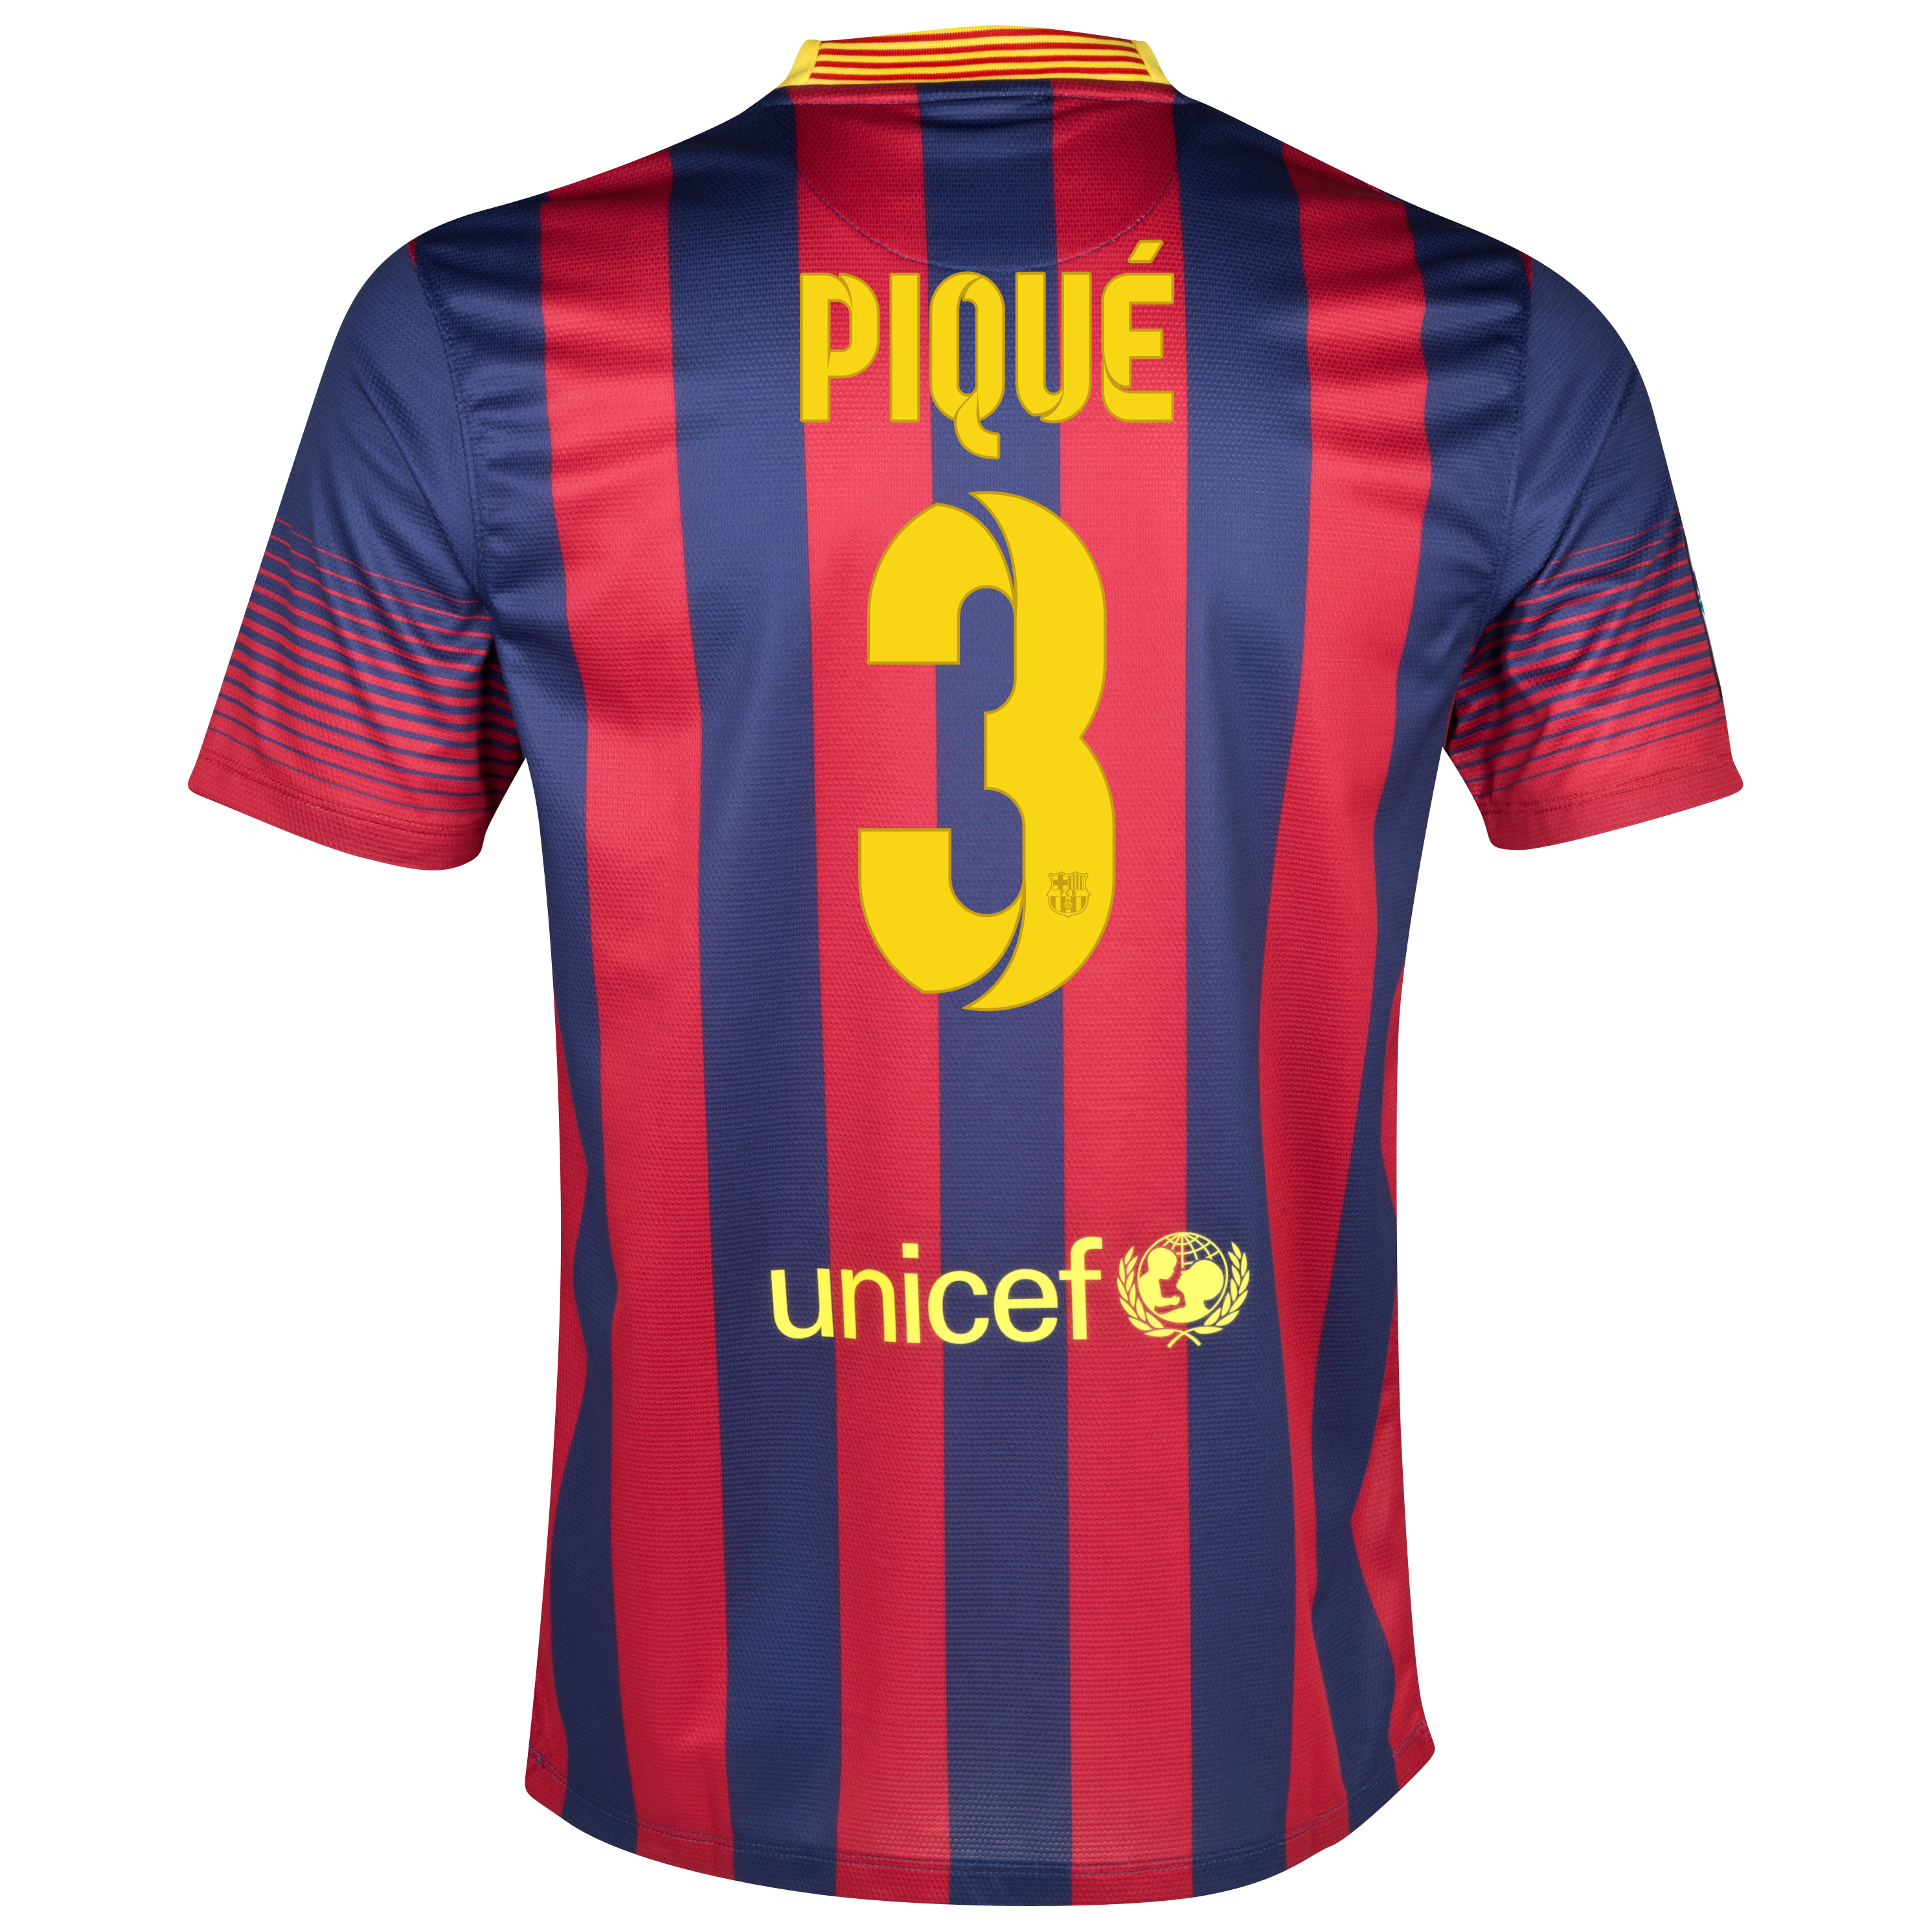 Barcelona Home Shirt 2013/14 with Pique 3 printing